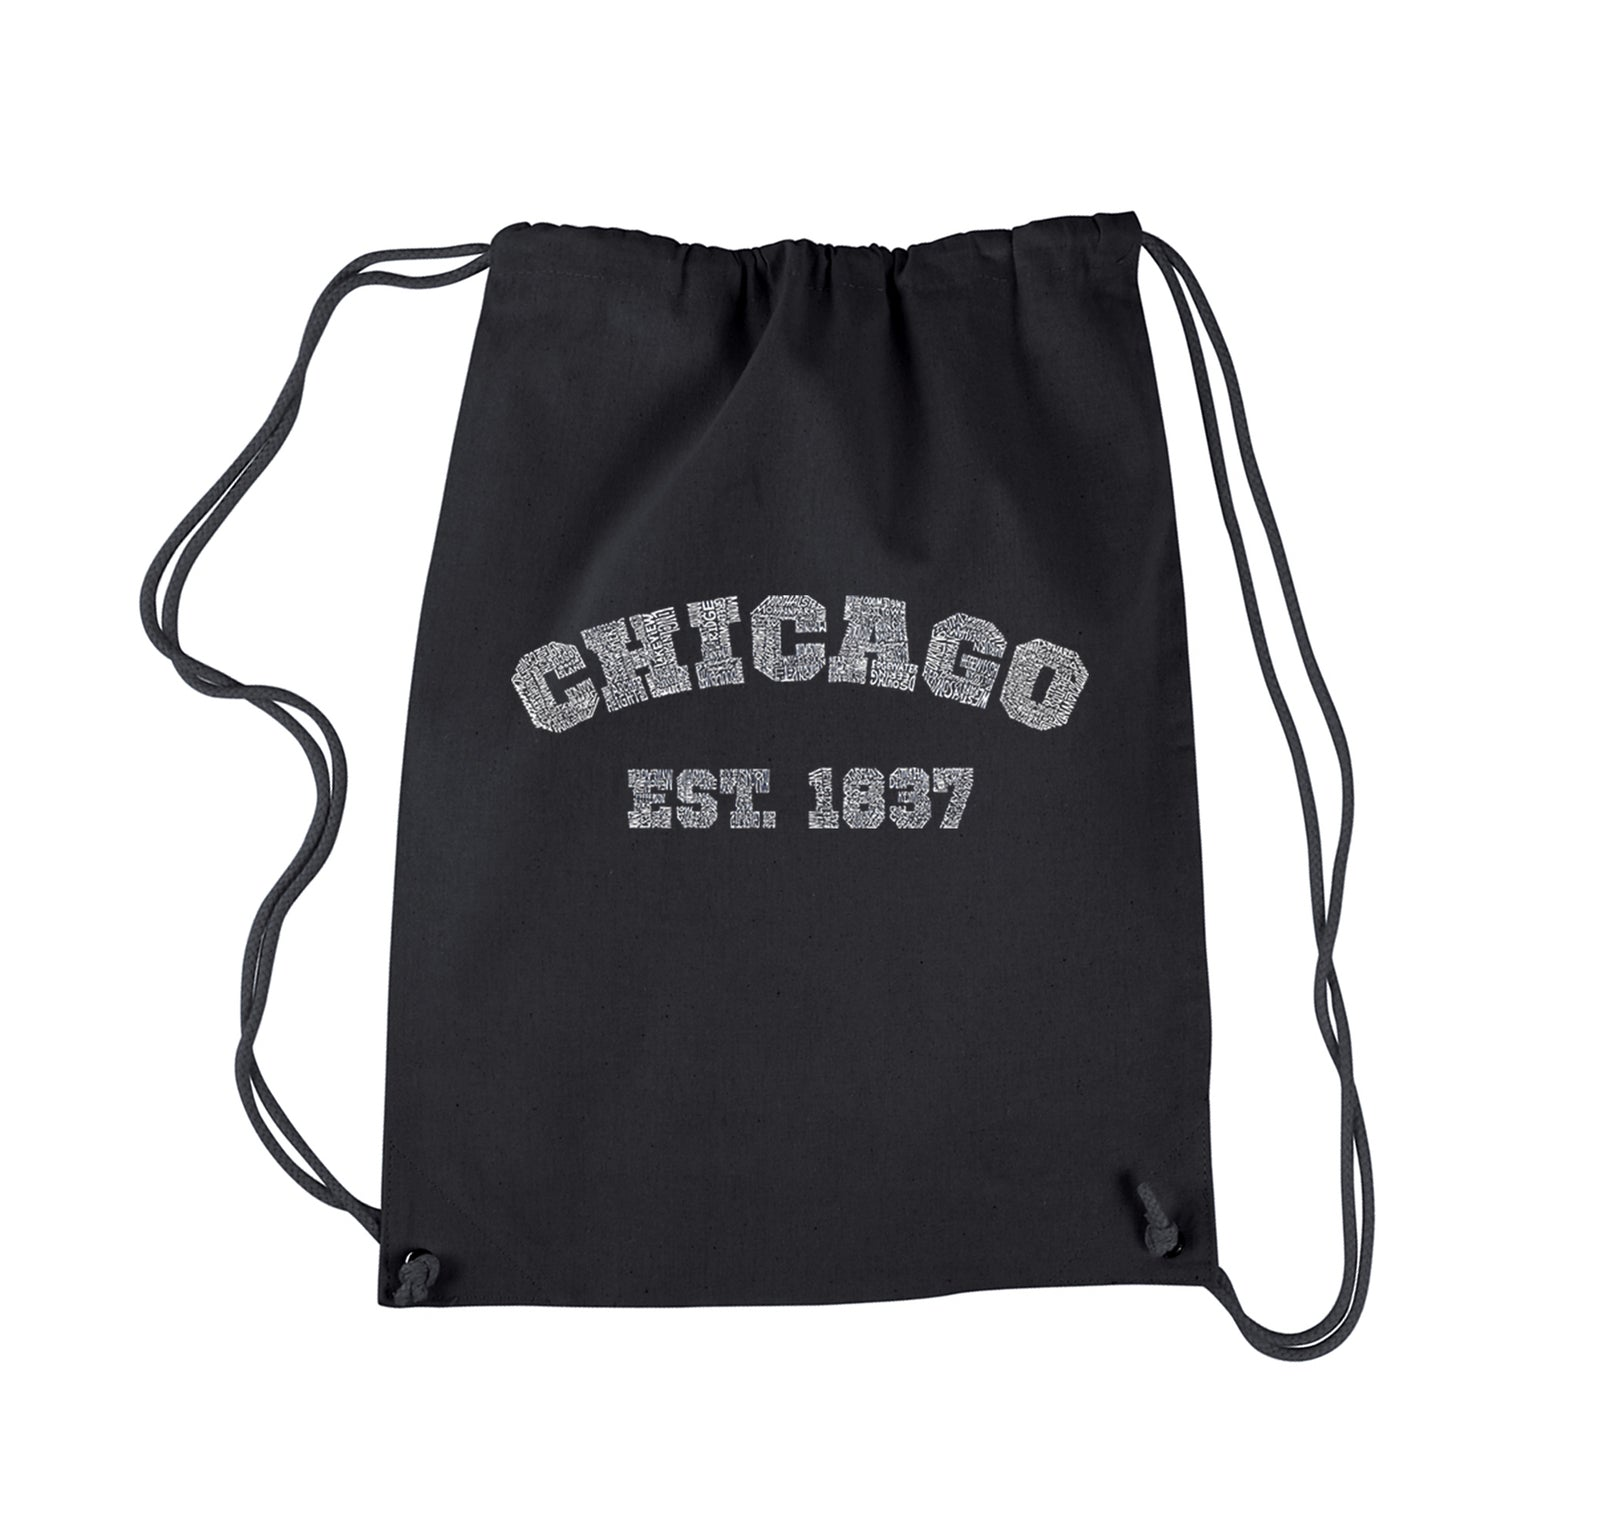 Drawstring Backpack - Chicago 1837